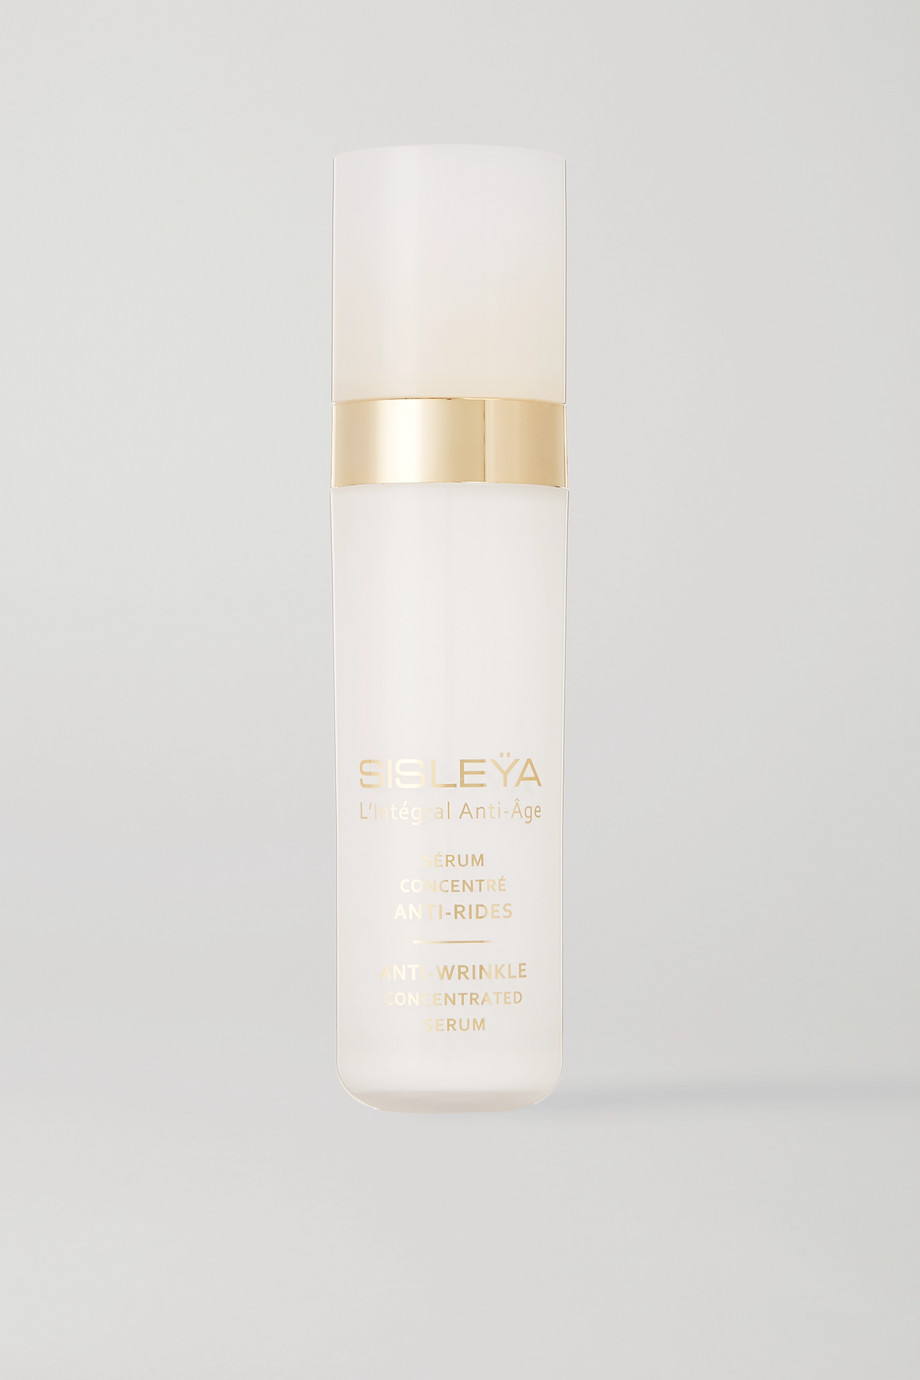 Sisley Sisleÿa L'Intégral Anti-Age Anti-Wrinkle Concentrated Serum, 30ml